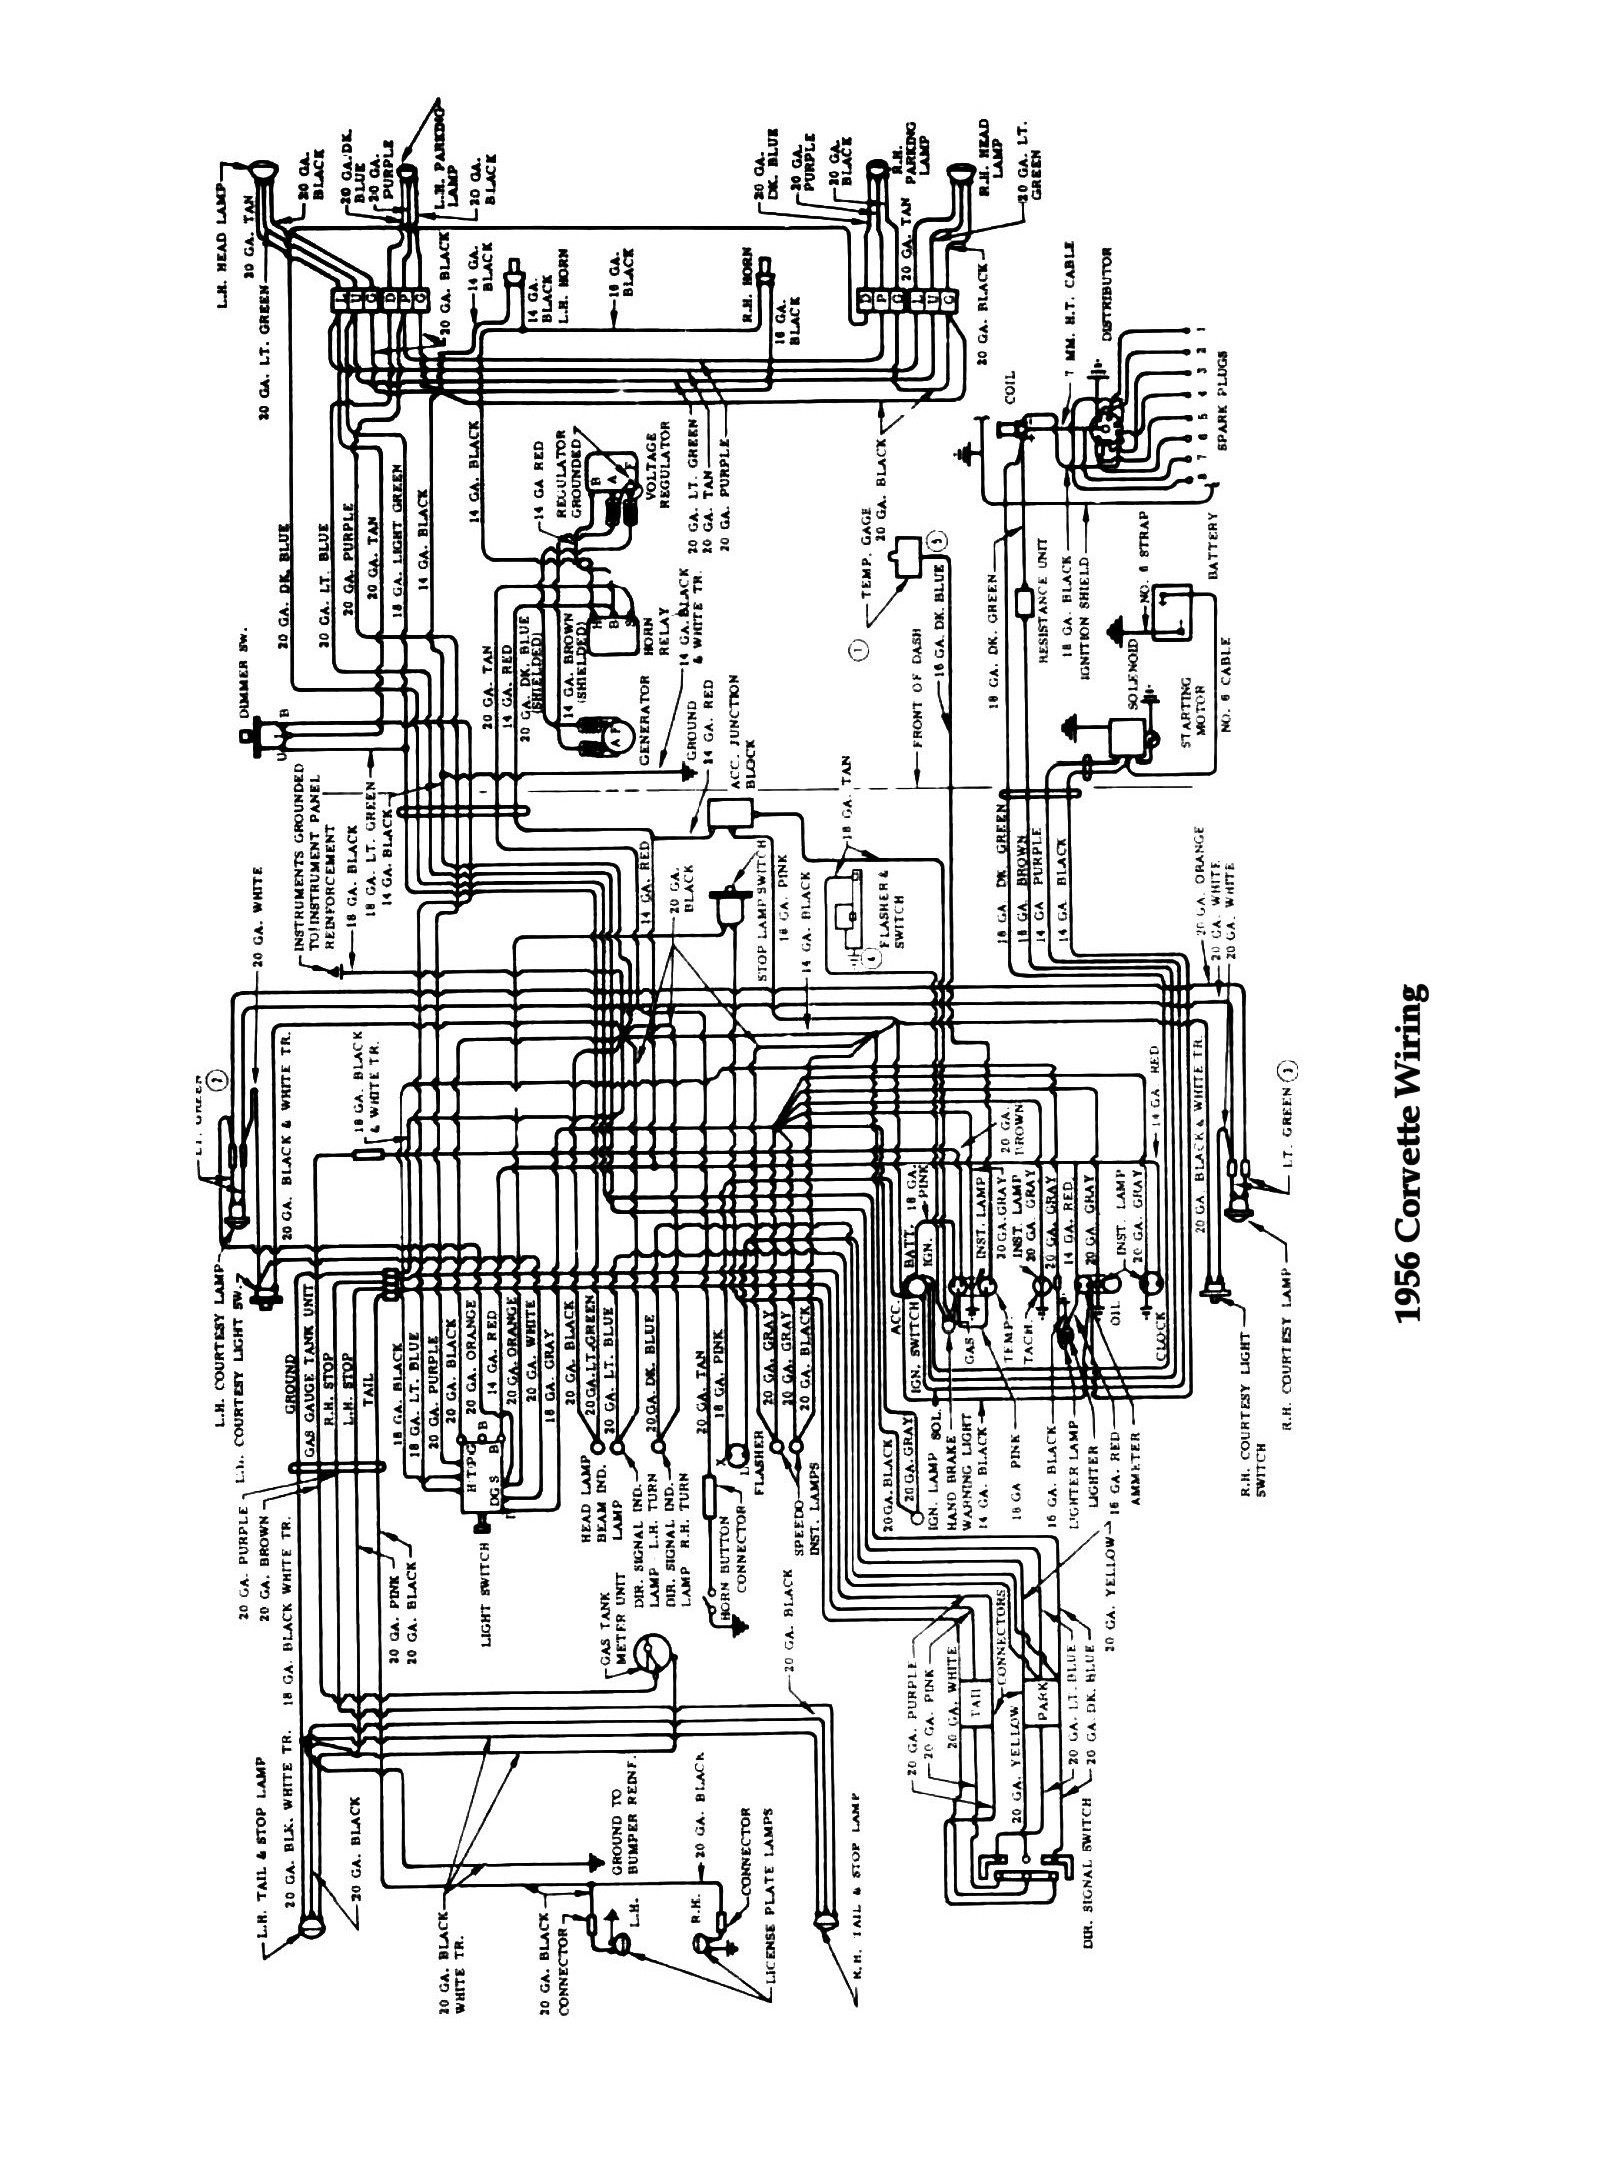 1976 corvette radio wiring diagram lincoln ranger welder vacuum for 79 free engine image